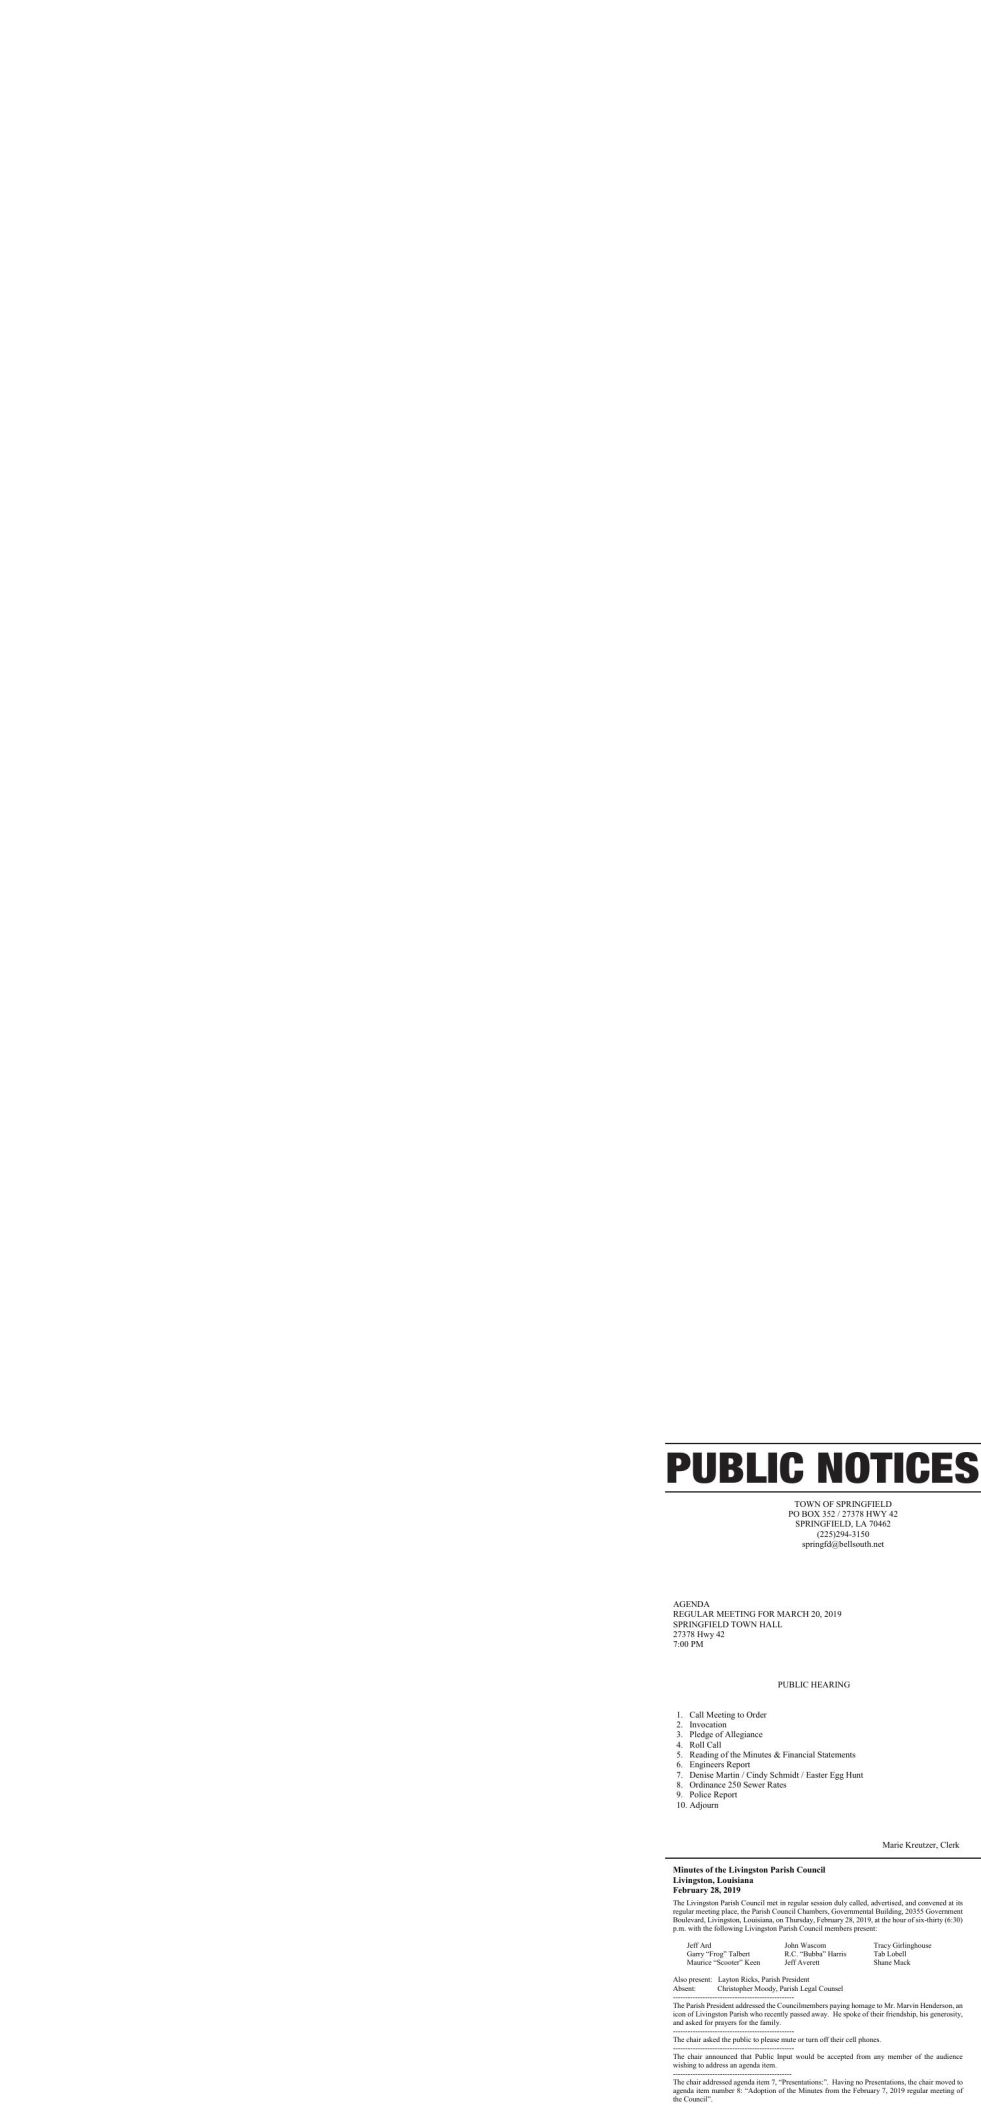 Public Notices published March 21, 2019